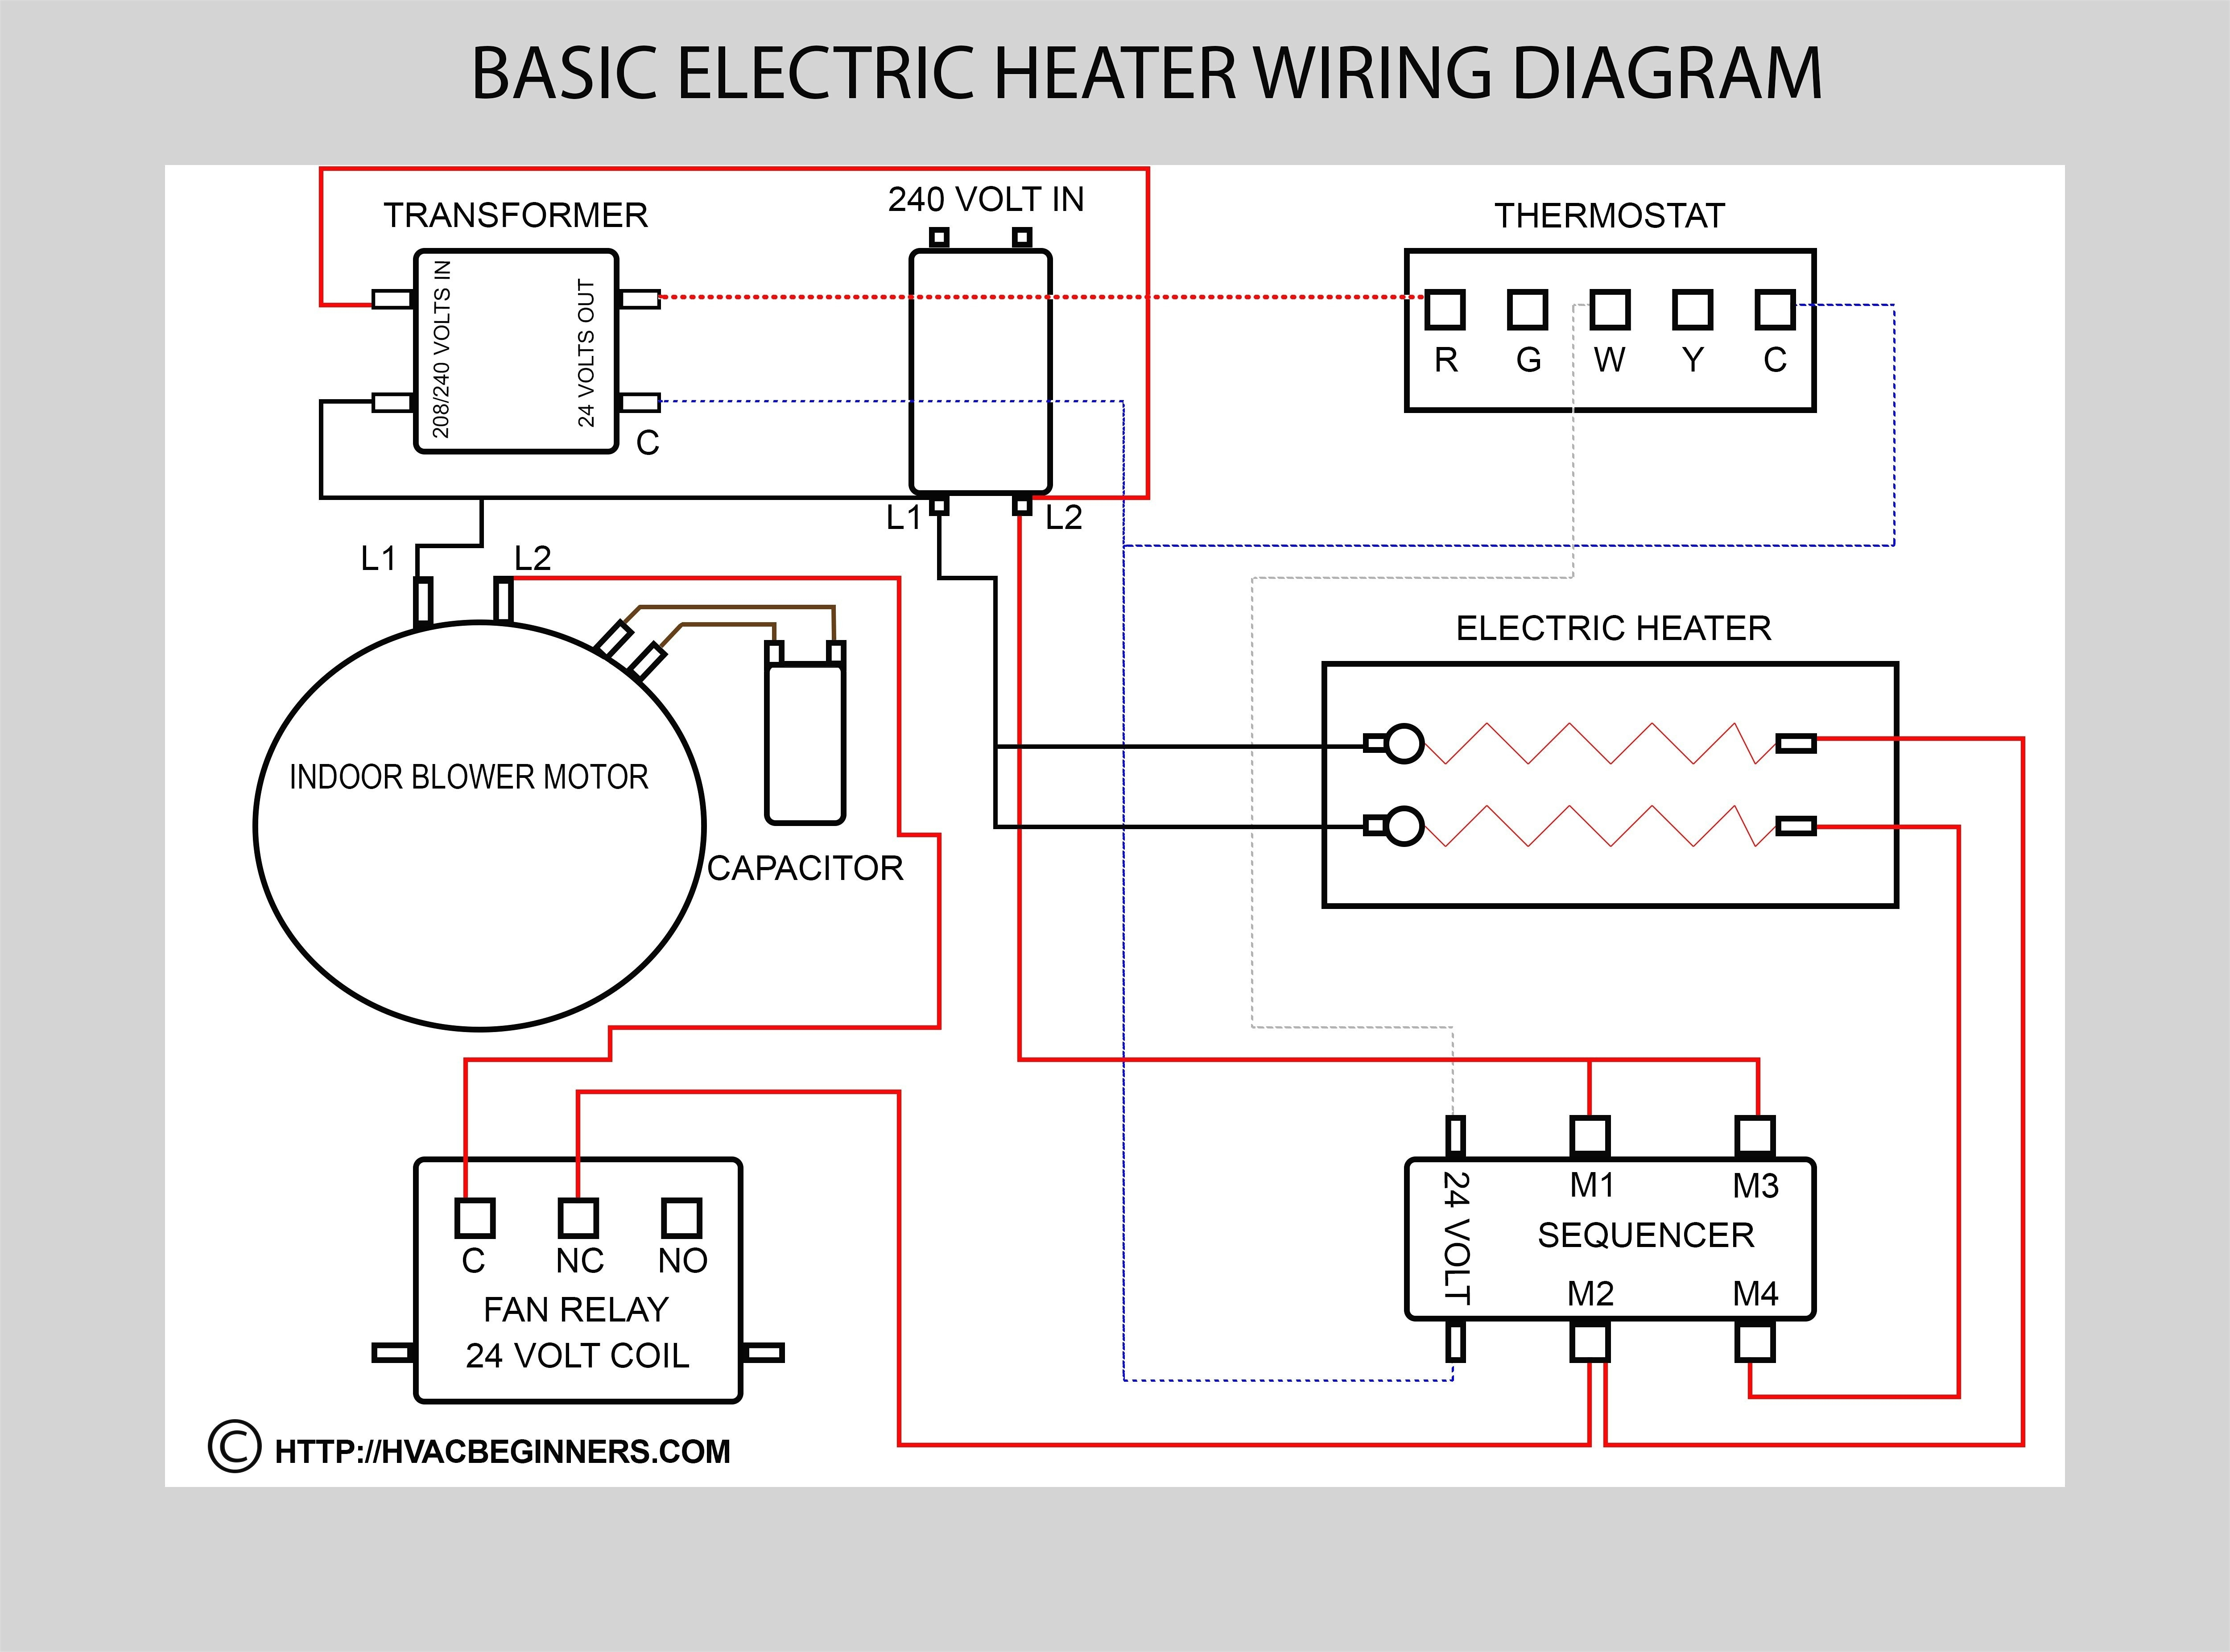 Electrical Blower Motor Wiring Diagrams - Wiring Diagram on